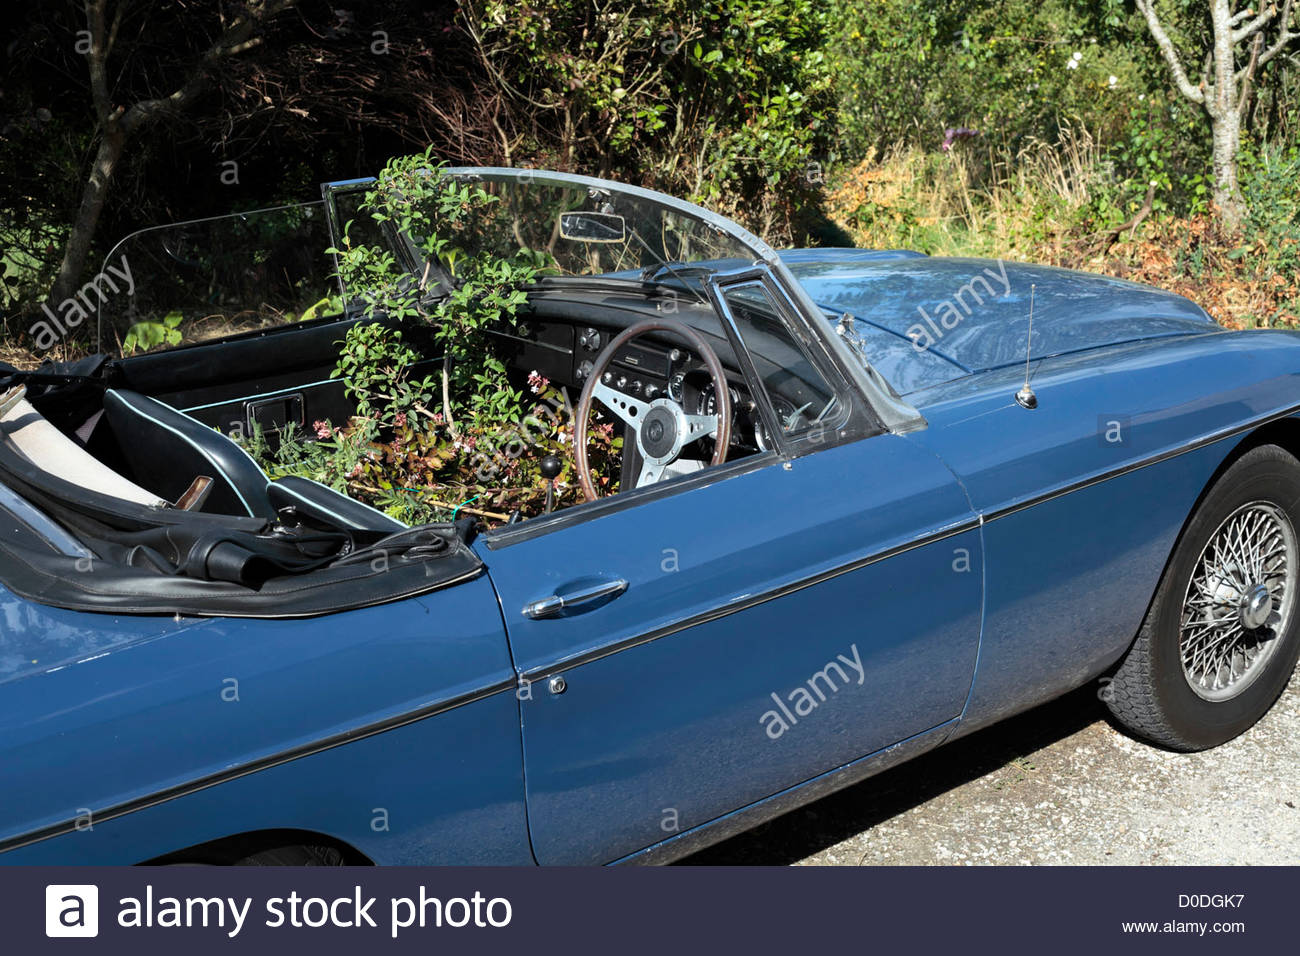 MG sports car with plants growing inside - Stock Image